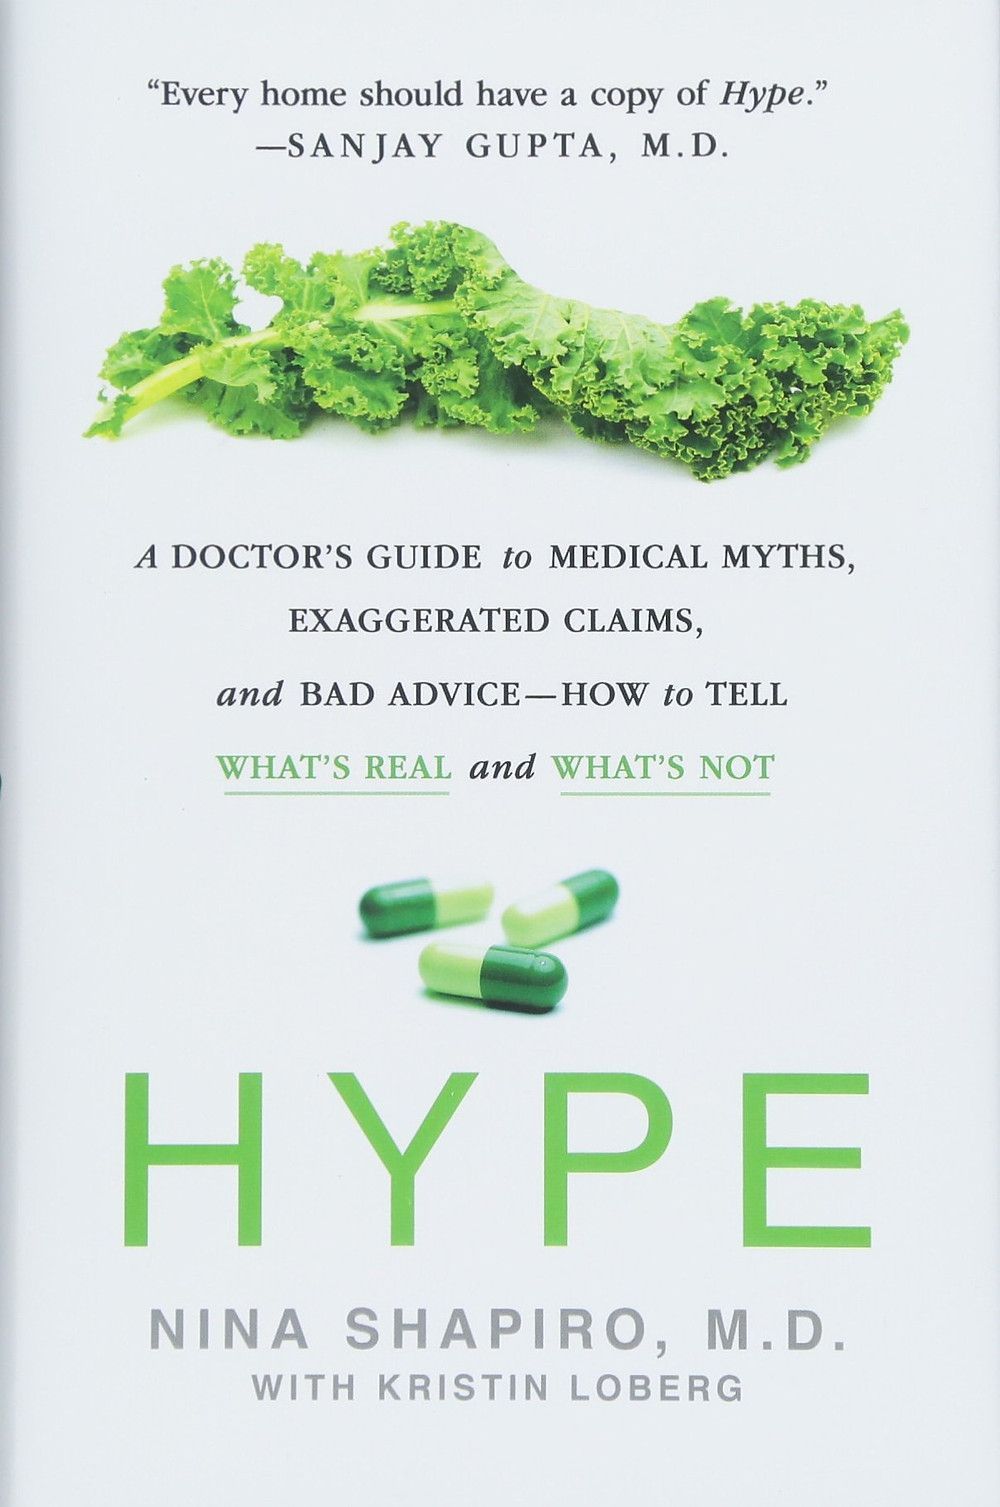 Book Talk: HYPE: A Doctor's Guide to Medical Myths, Exaggerated Claims, and Bad Advice— How to Tell What's Real and What's Not by Nina Shapiro MD and Kristin Loberg_The BookWalker